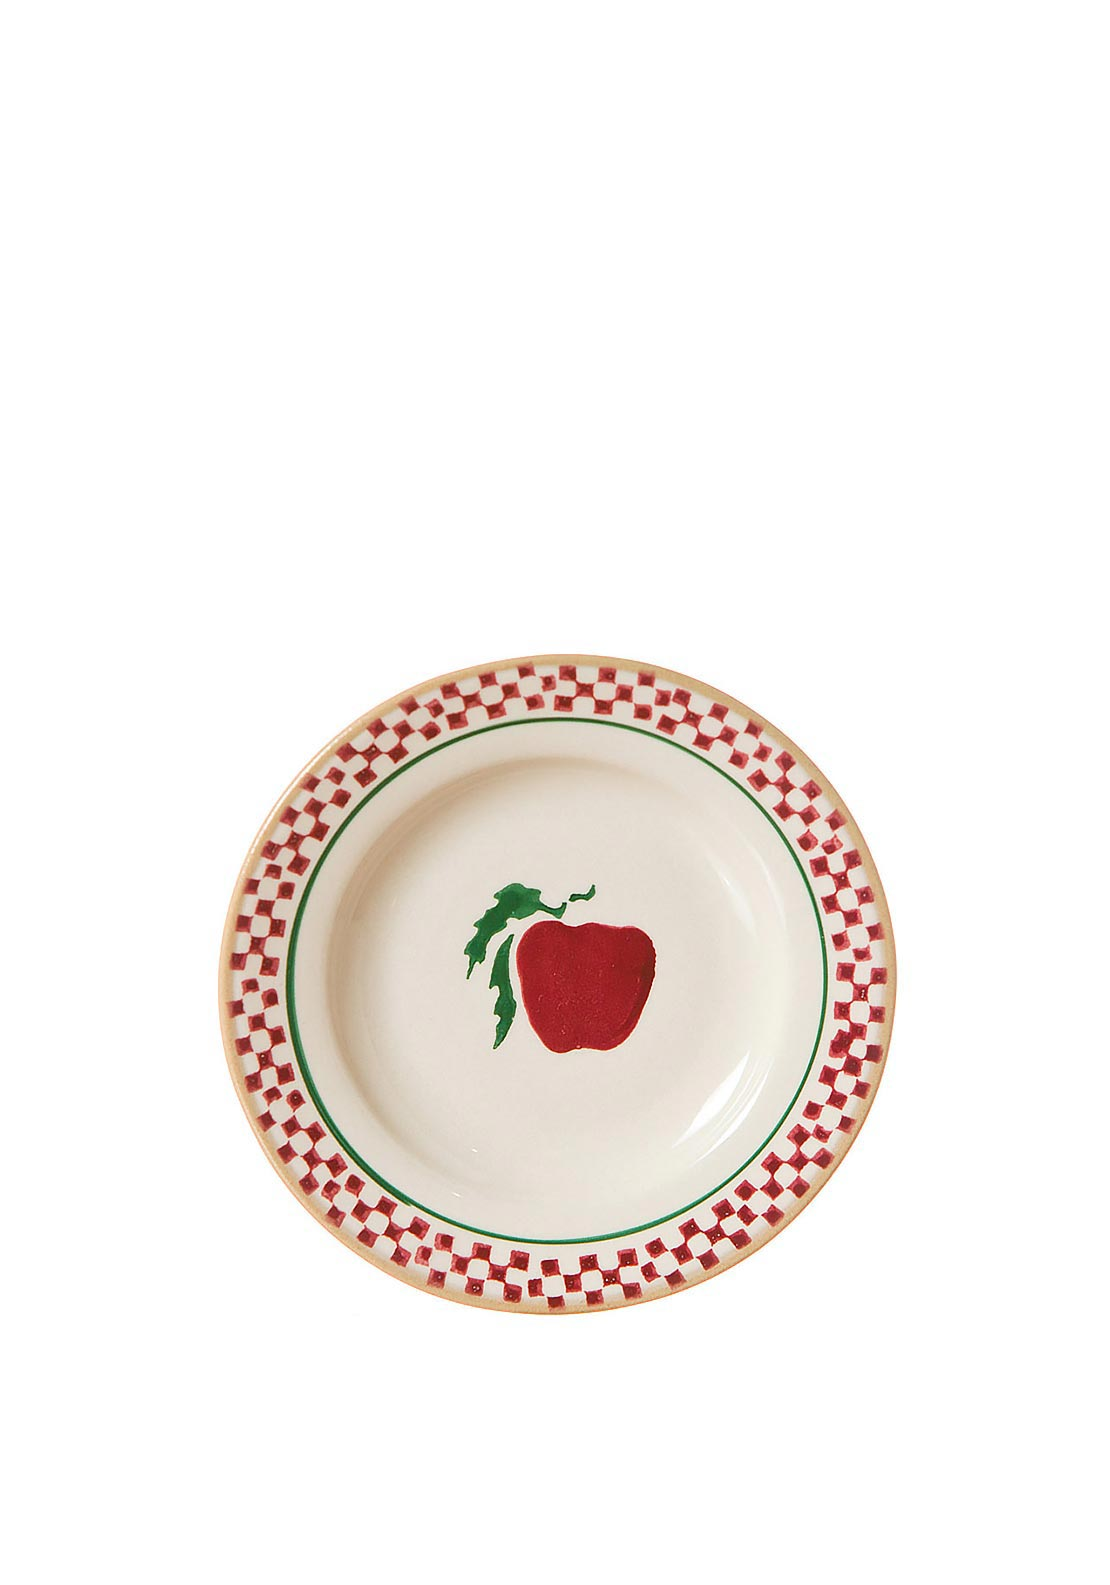 Nicholas Mosse Pottery Apple Tiny Heart Plate